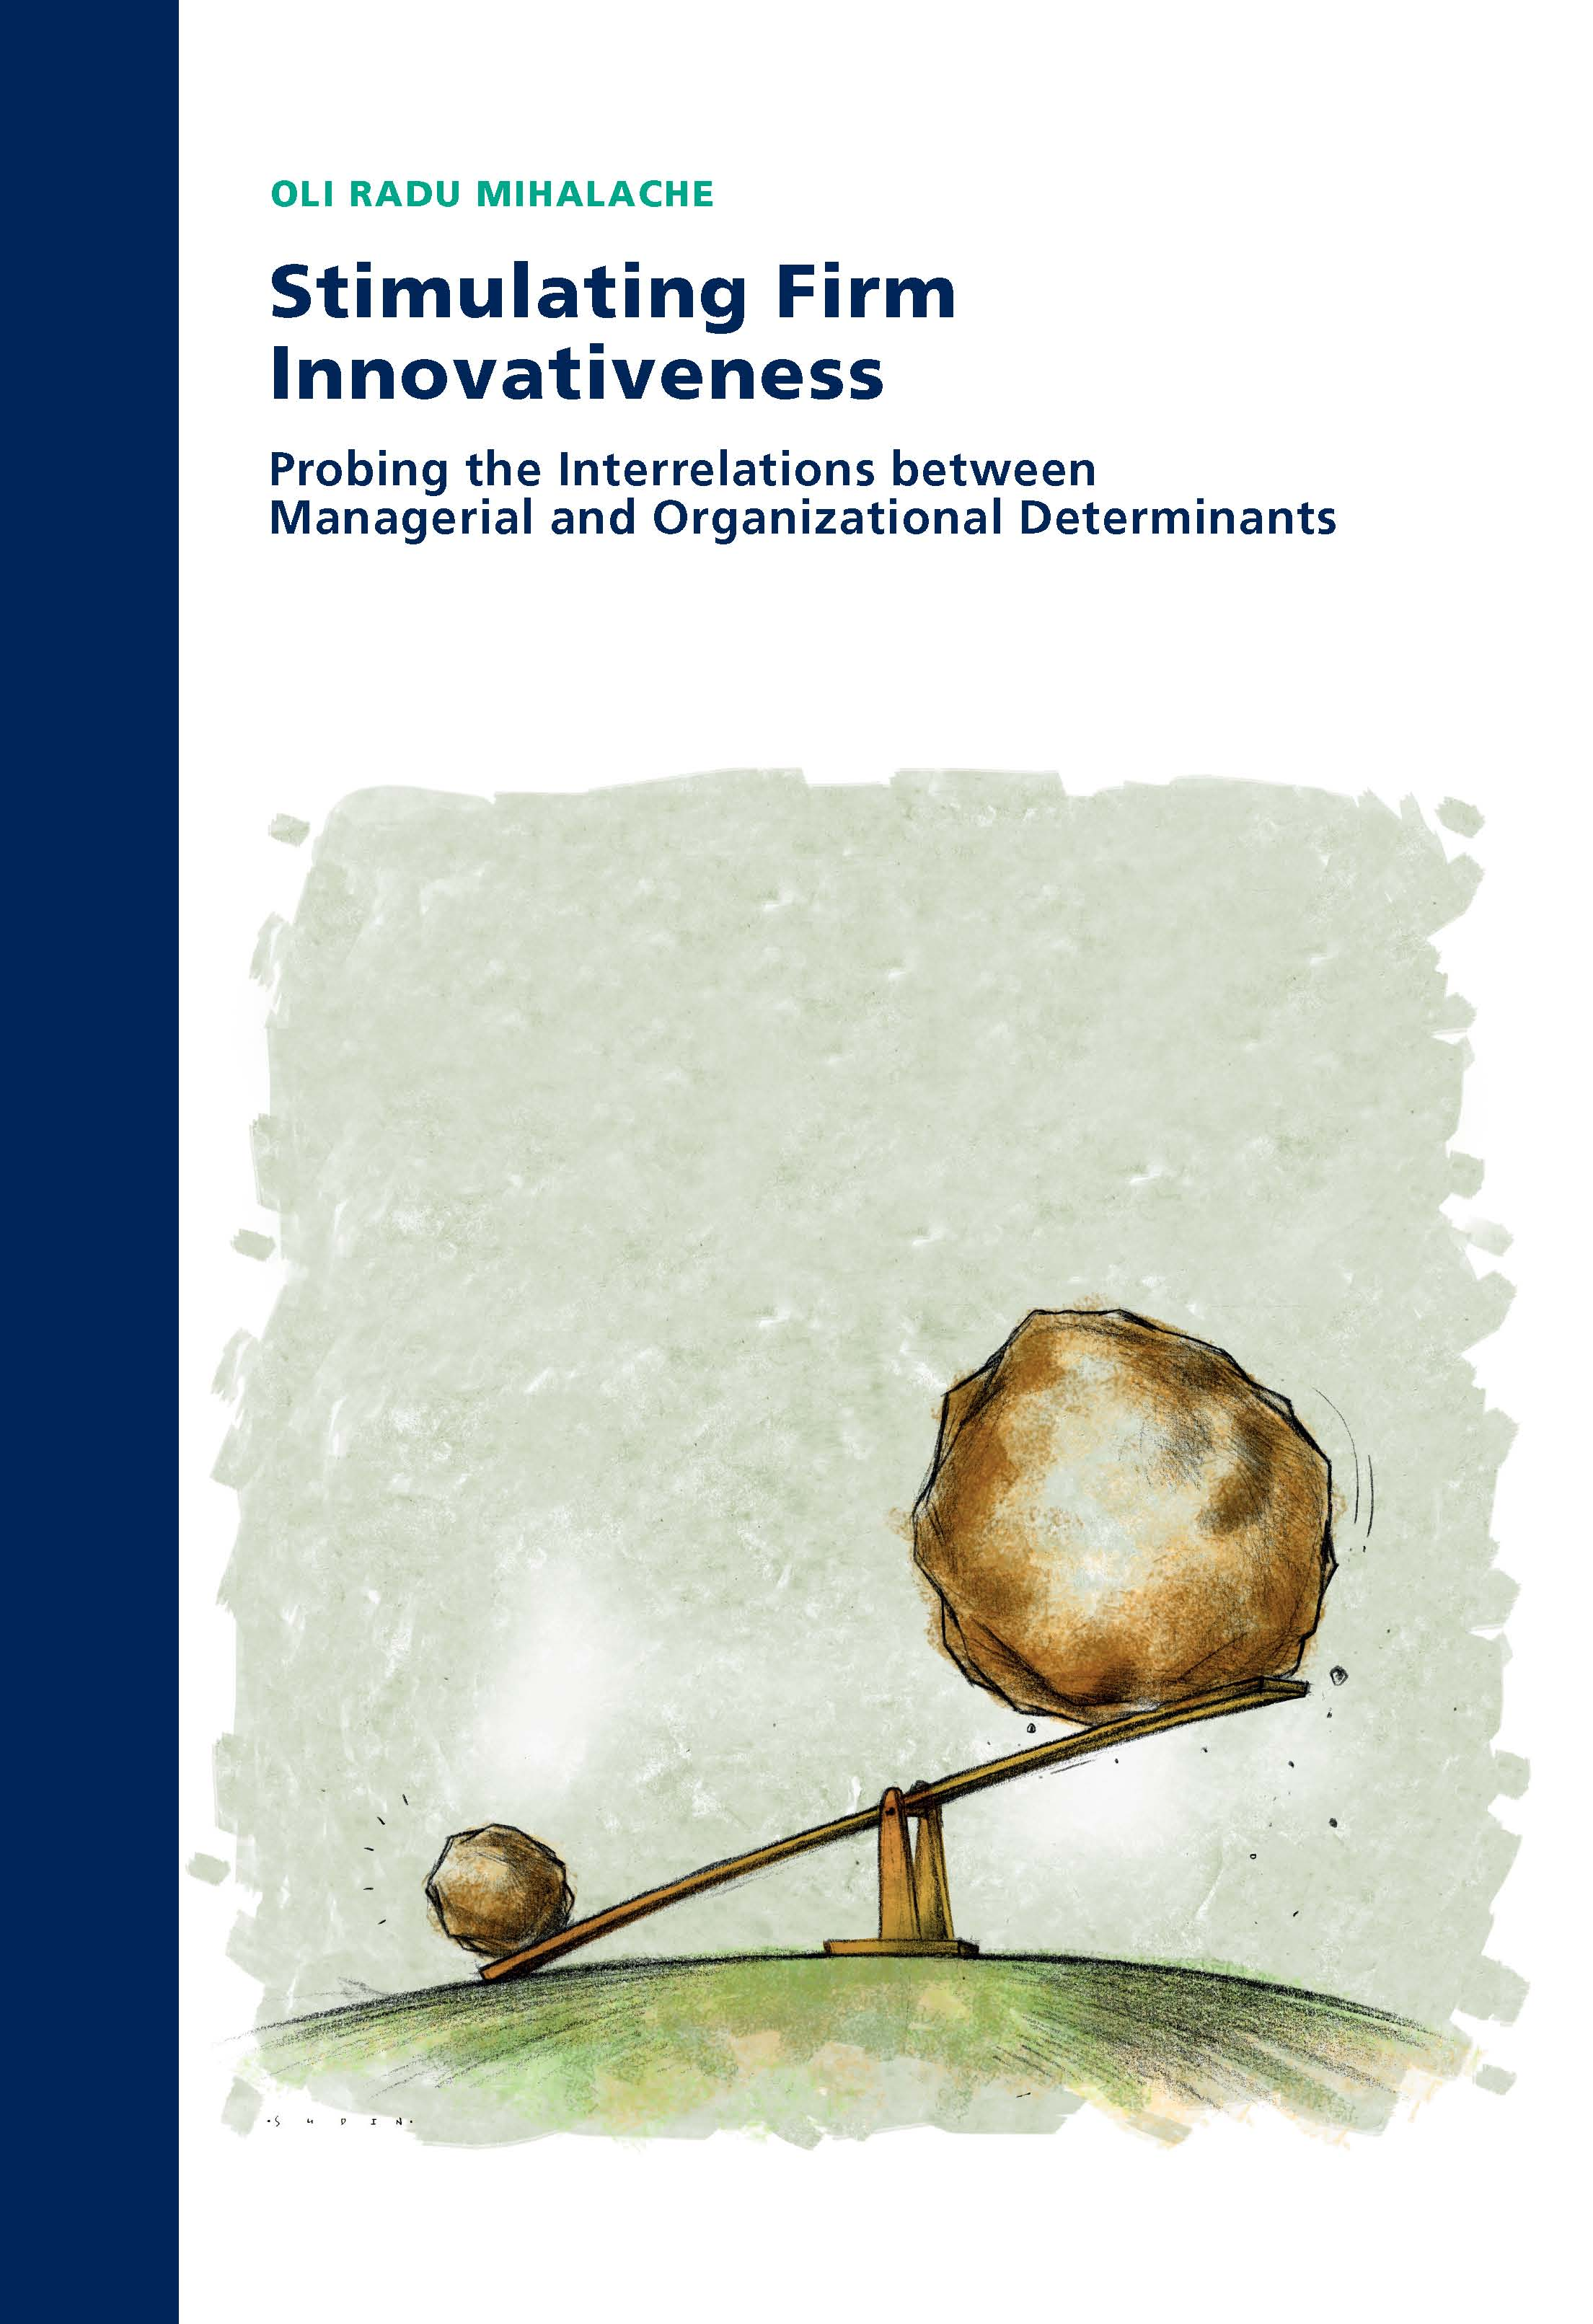 Stimulating Firm Innovativeness: Probing the Interrelations between Managerial and Organizational Determinants